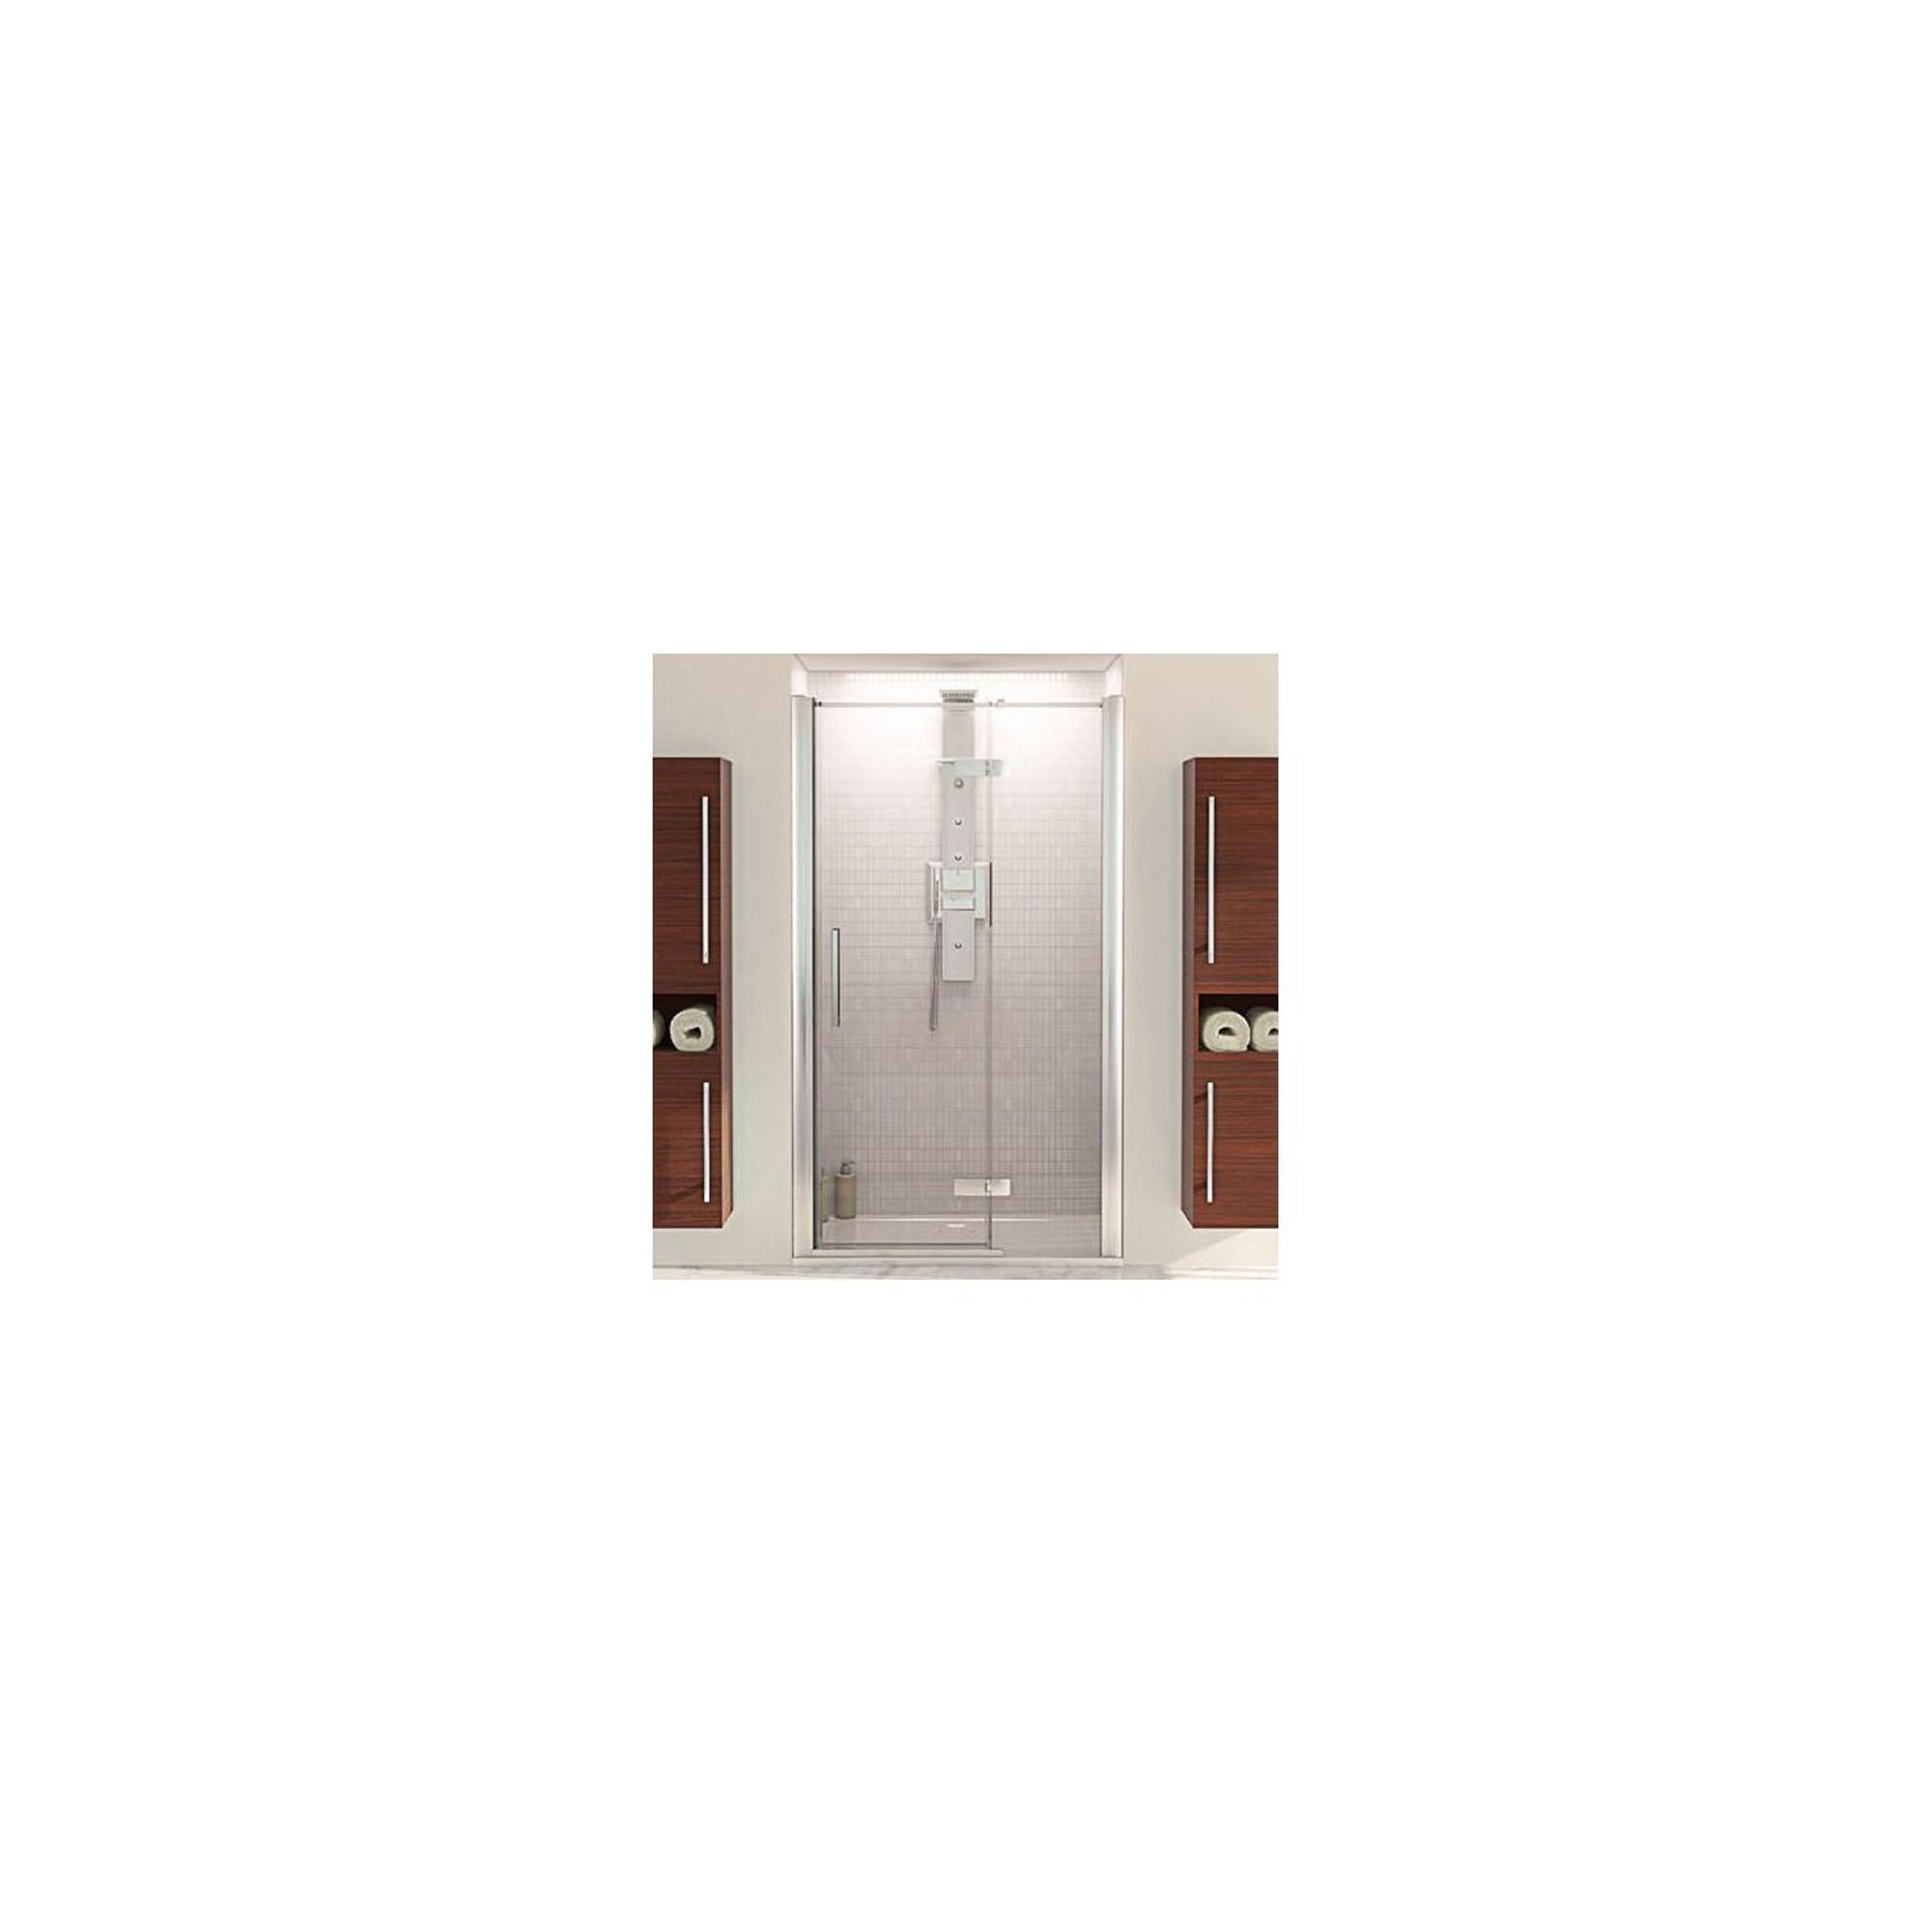 Aqualux AQUA8 Hinge Pivot Shower Door with Inline Panel, 1200mm Wide, Polished Silver Frame, 8mm Glass at Tesco Direct